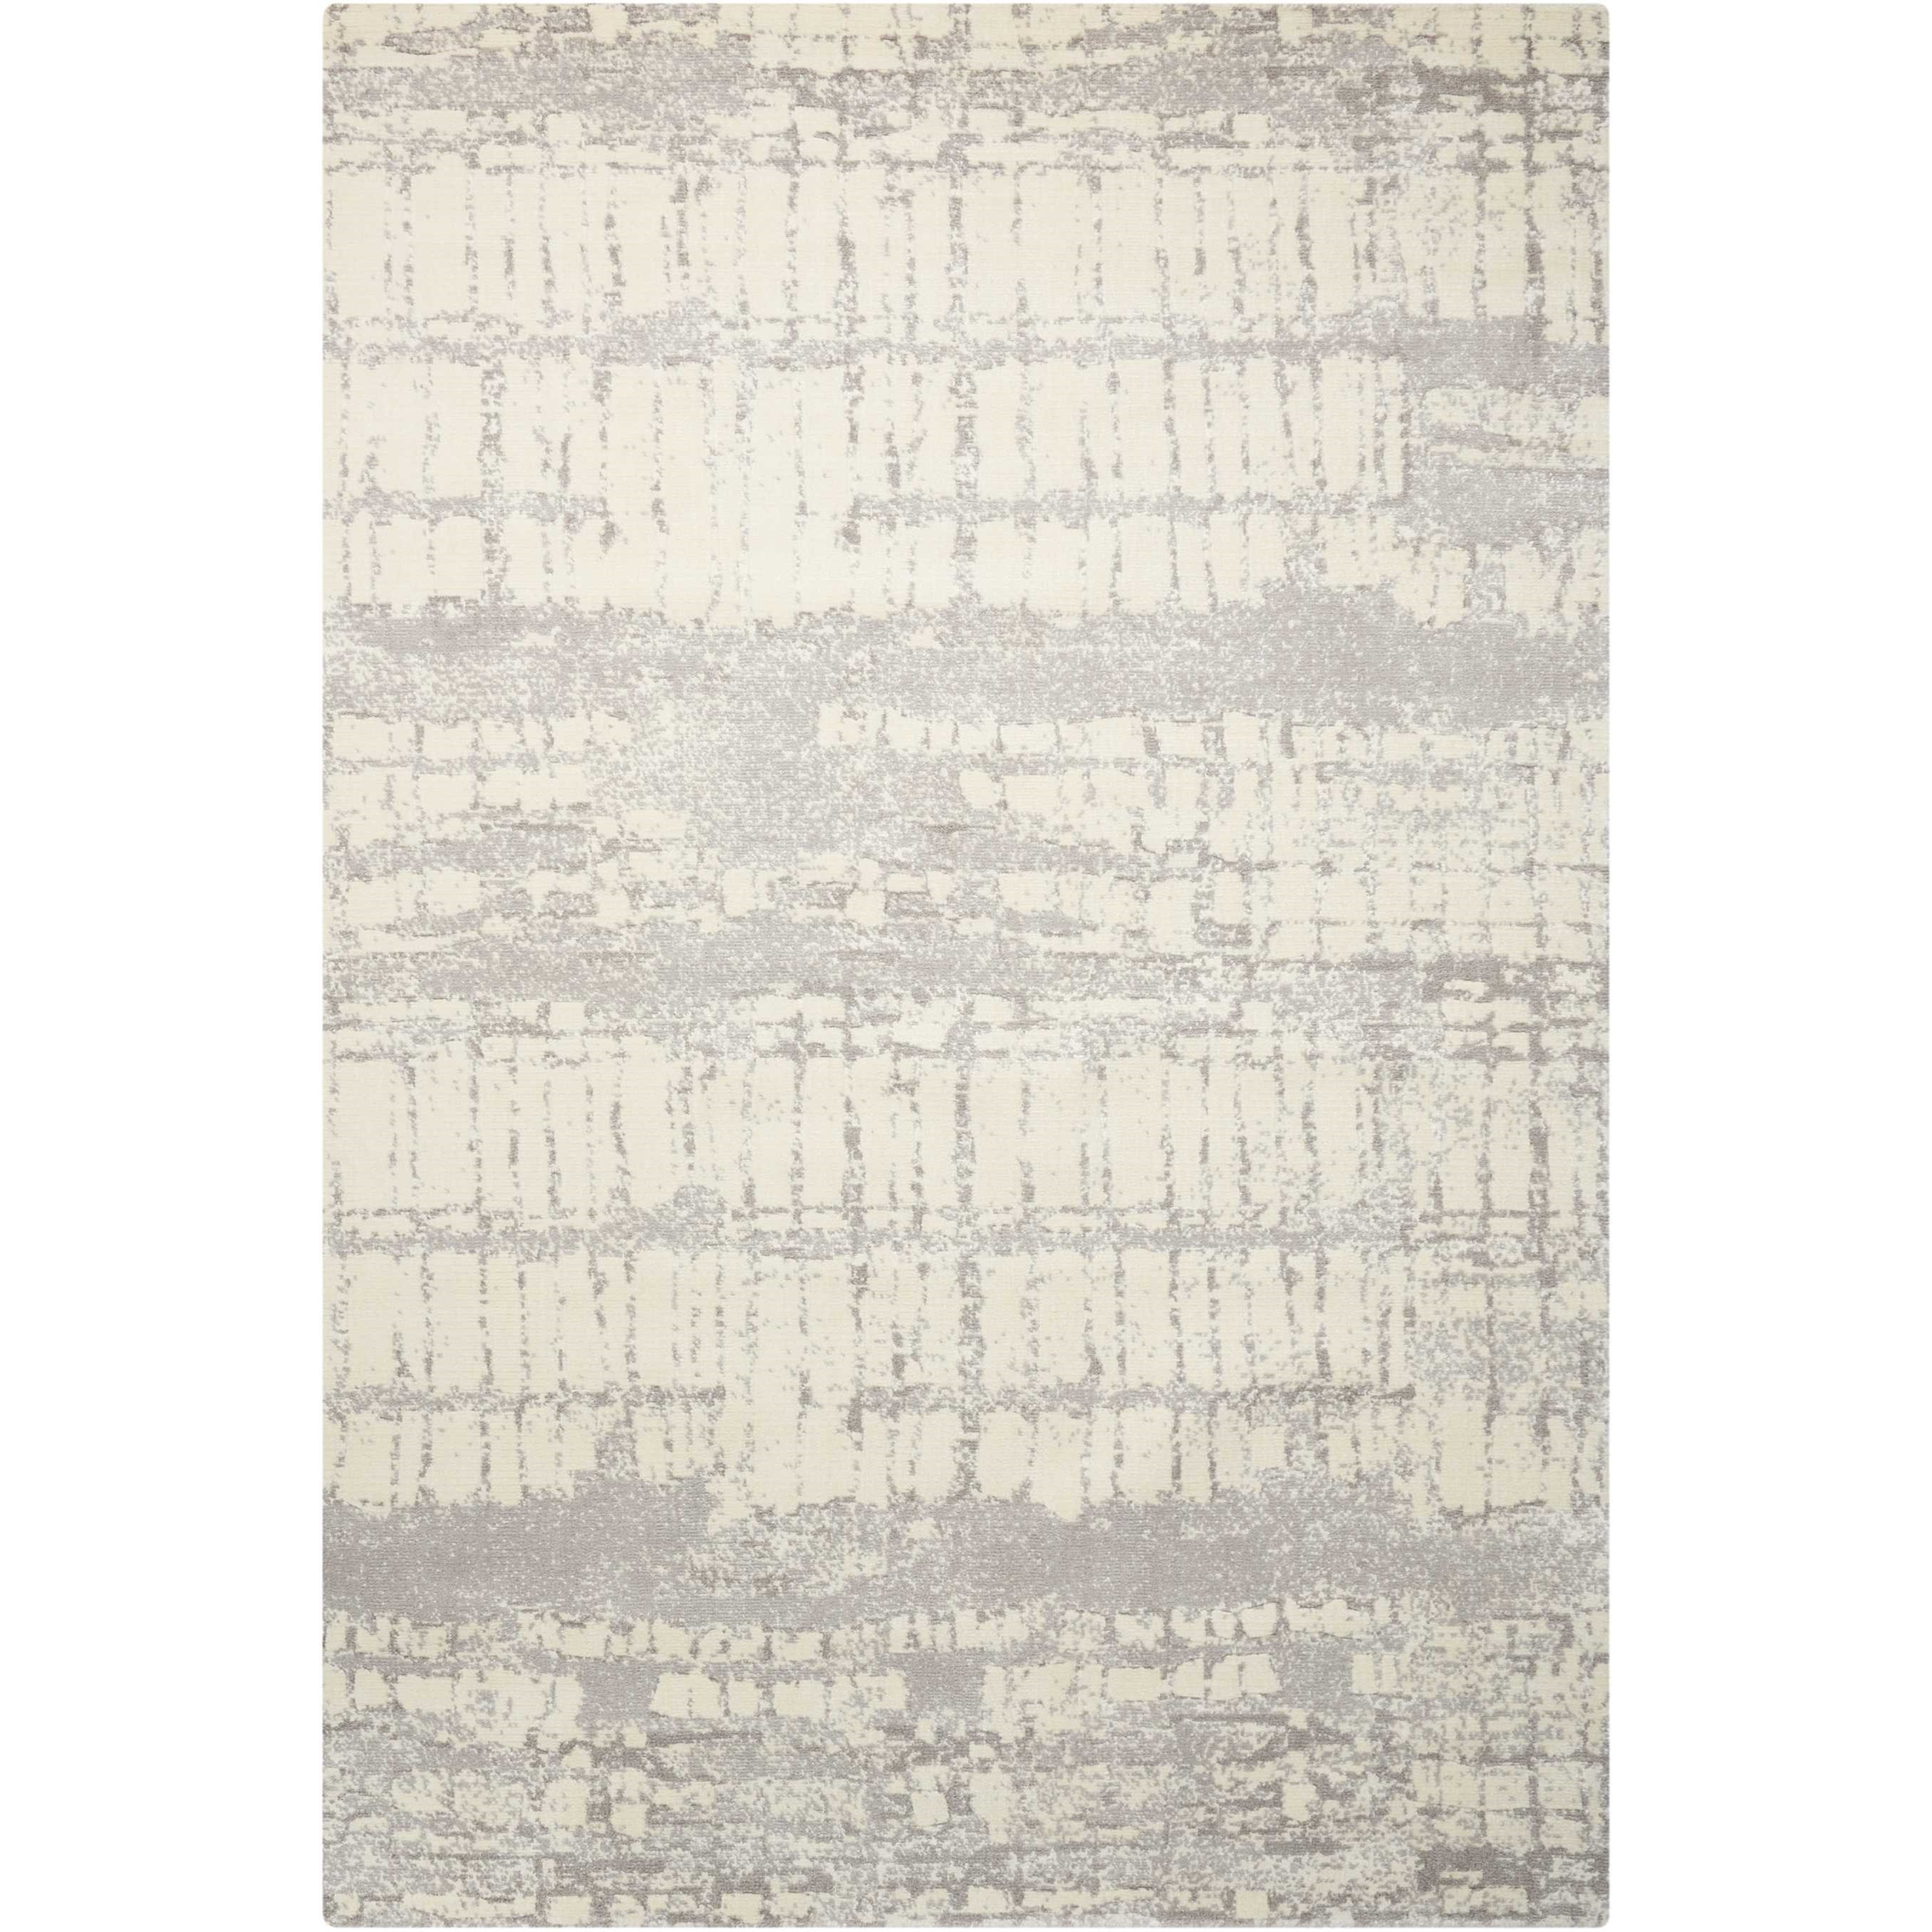 Twilight 8'x10' Large Rug by Nourison at Home Collections Furniture